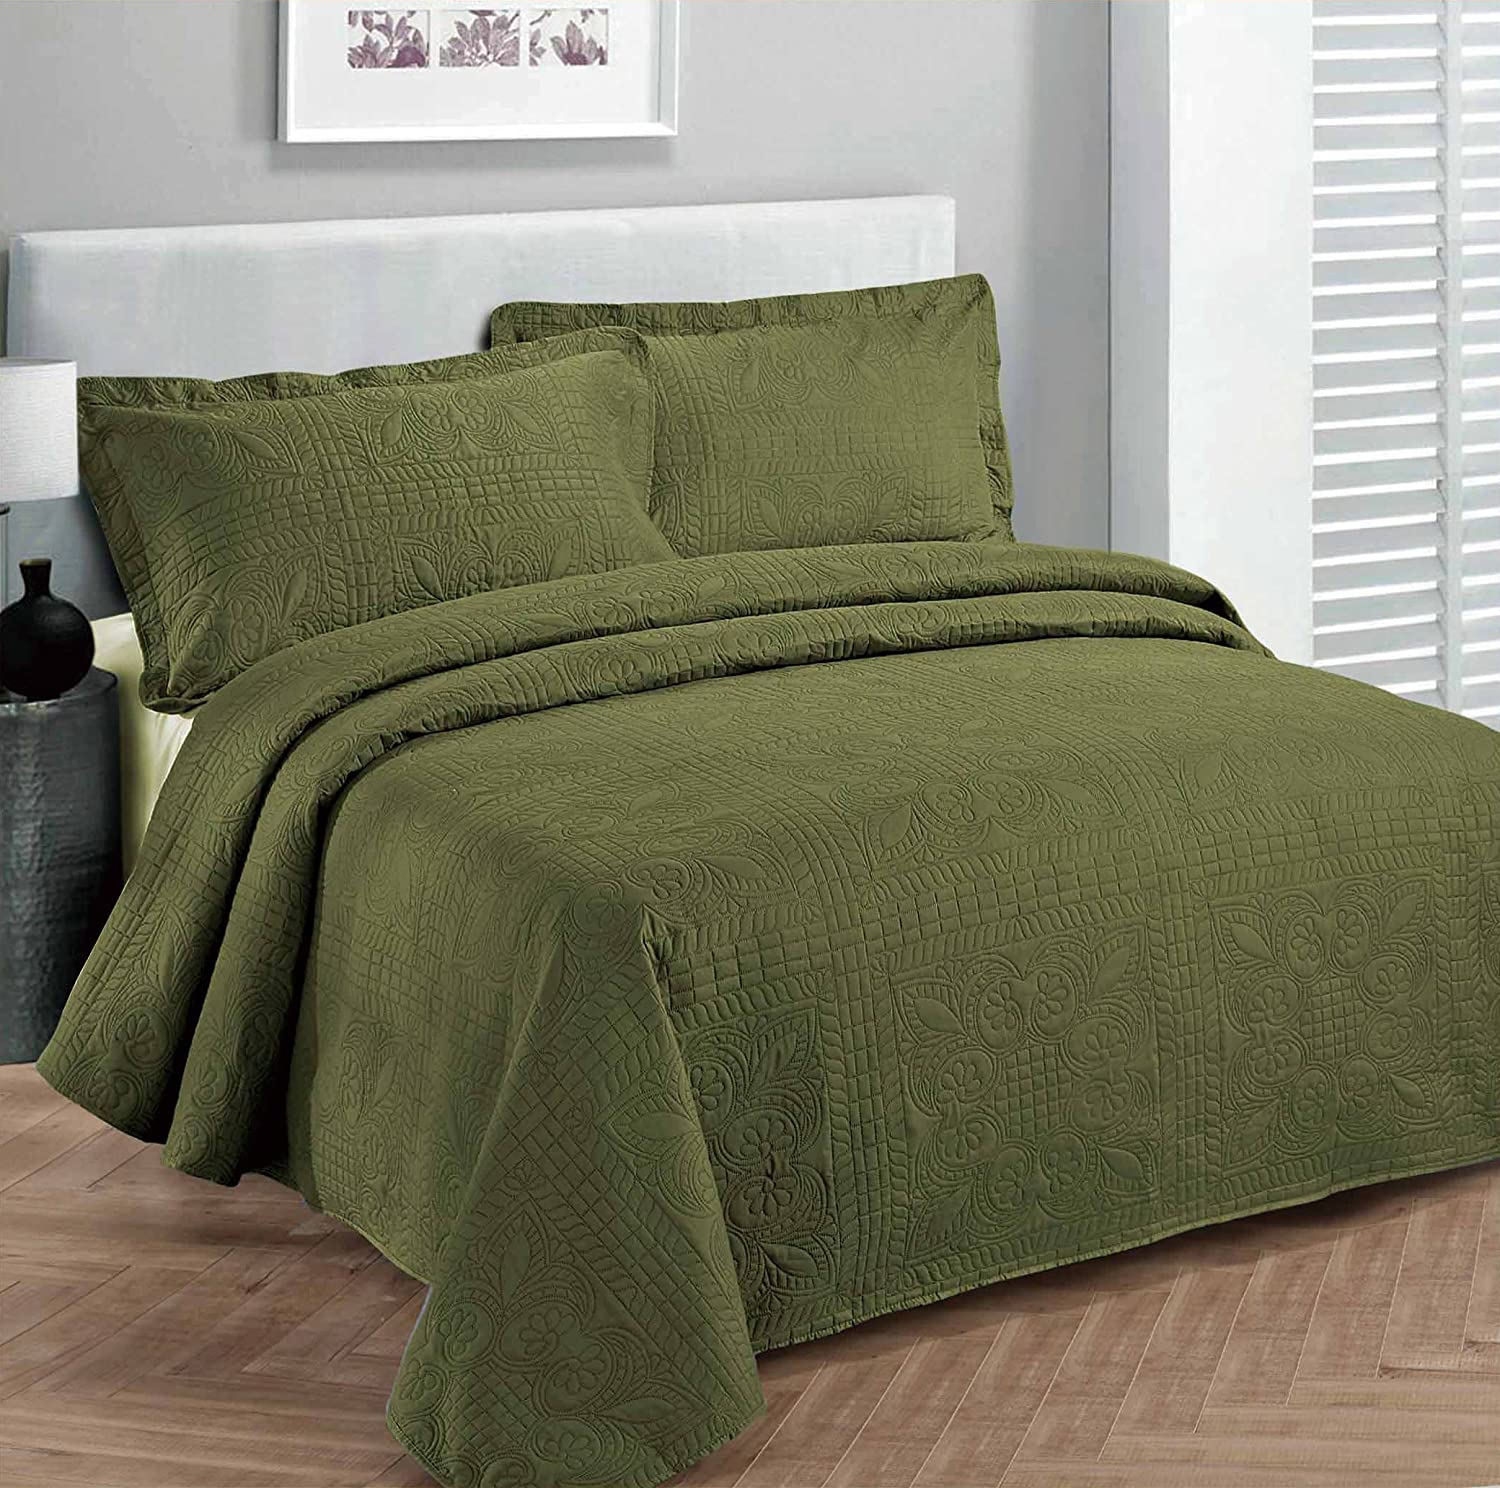 Fancy Collection 3pc Luxury Bedspread Coverlet Embossed Bed Cover Solid Olive Green